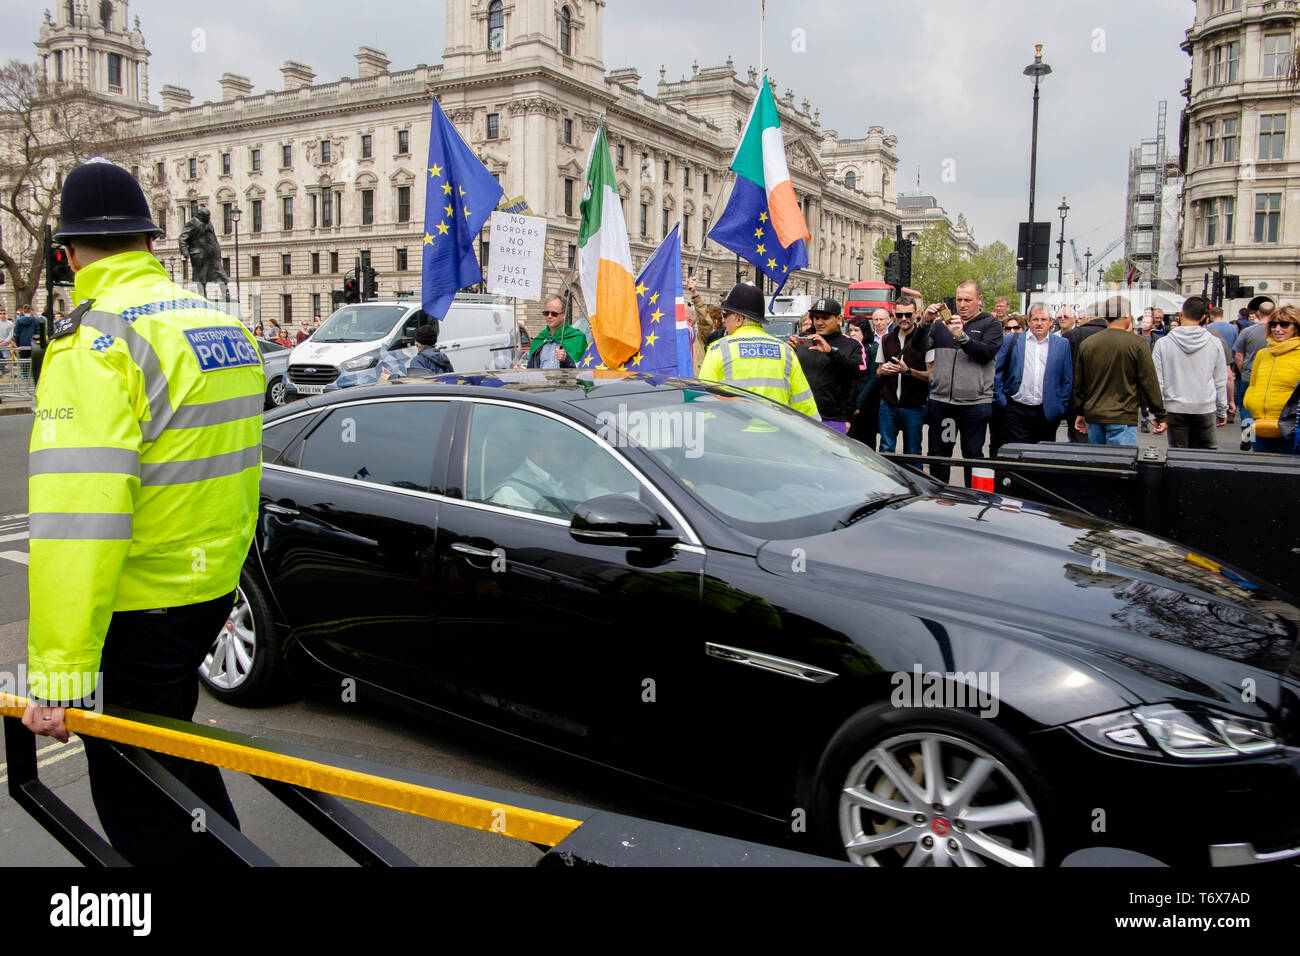 Ministerial vehicle drives into Houses of Parliament past pro-EU flag wavers - Stock Image